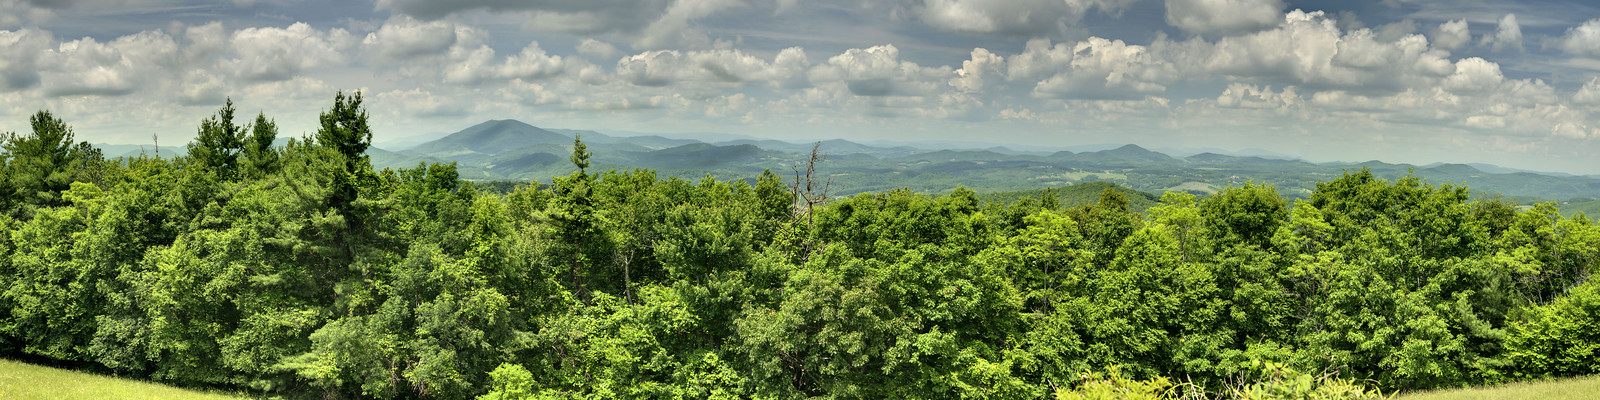 The view of the distant mountain at the Mt. Jefferson Overlook near Milepost 268 on the Blue Ridge Parkway in North Carolina on Friday, June 13, 2014. Copyright 2014 Jason Barnette